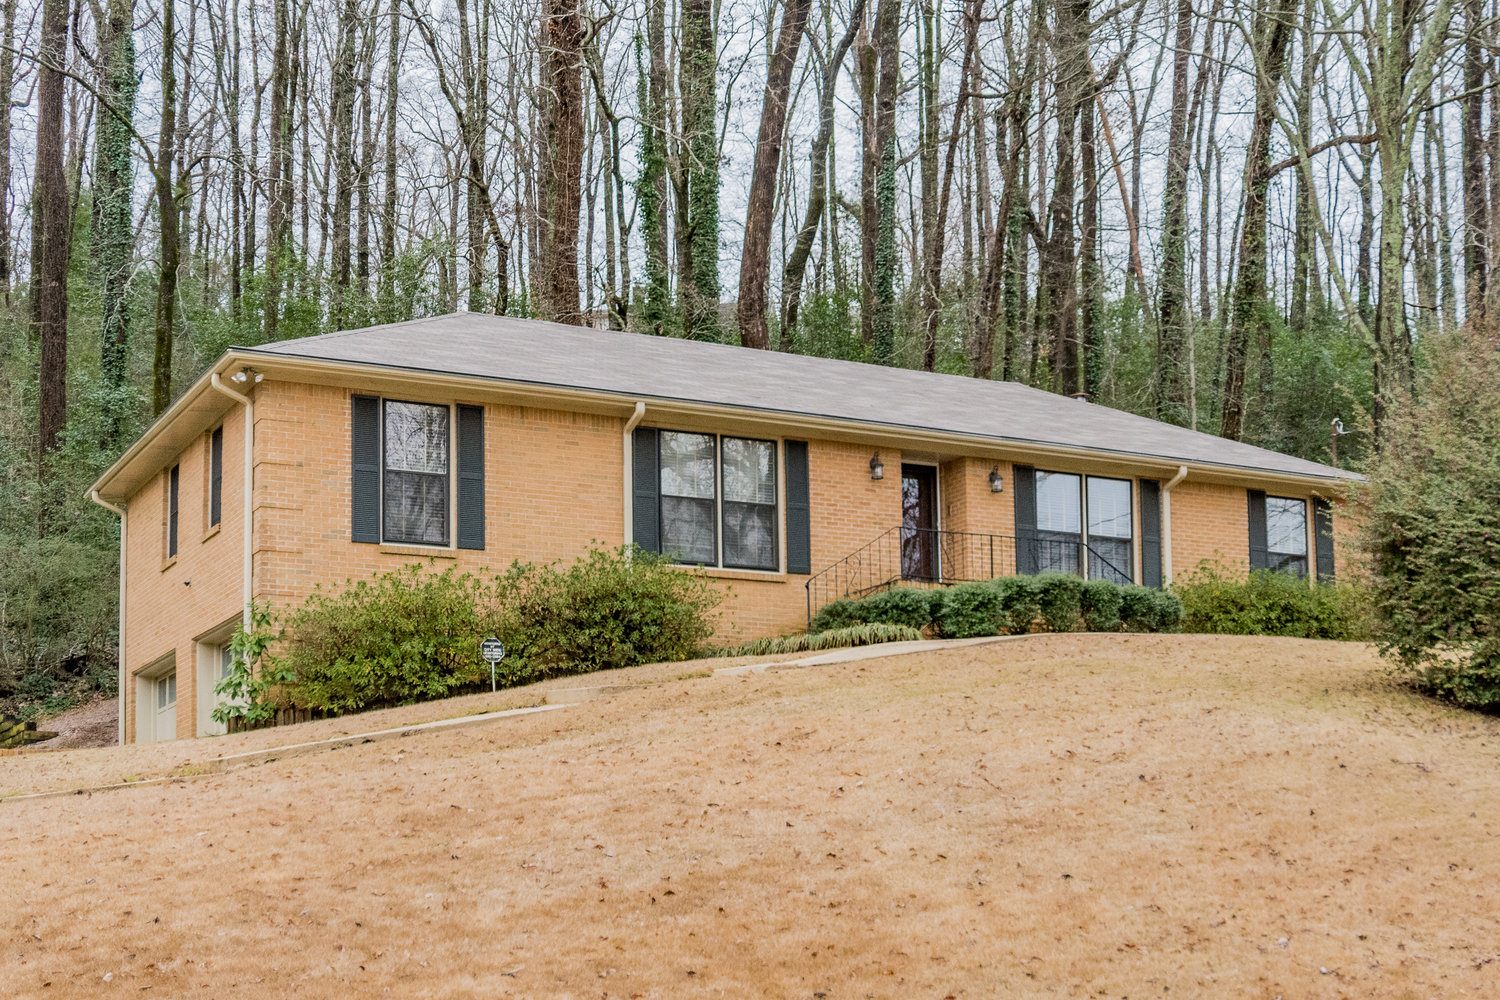 Virtual Tour of Birmingham Metro Real Estate Listing For Sale | 1037 Mountain Oaks Drive, Hoover, AL 35226